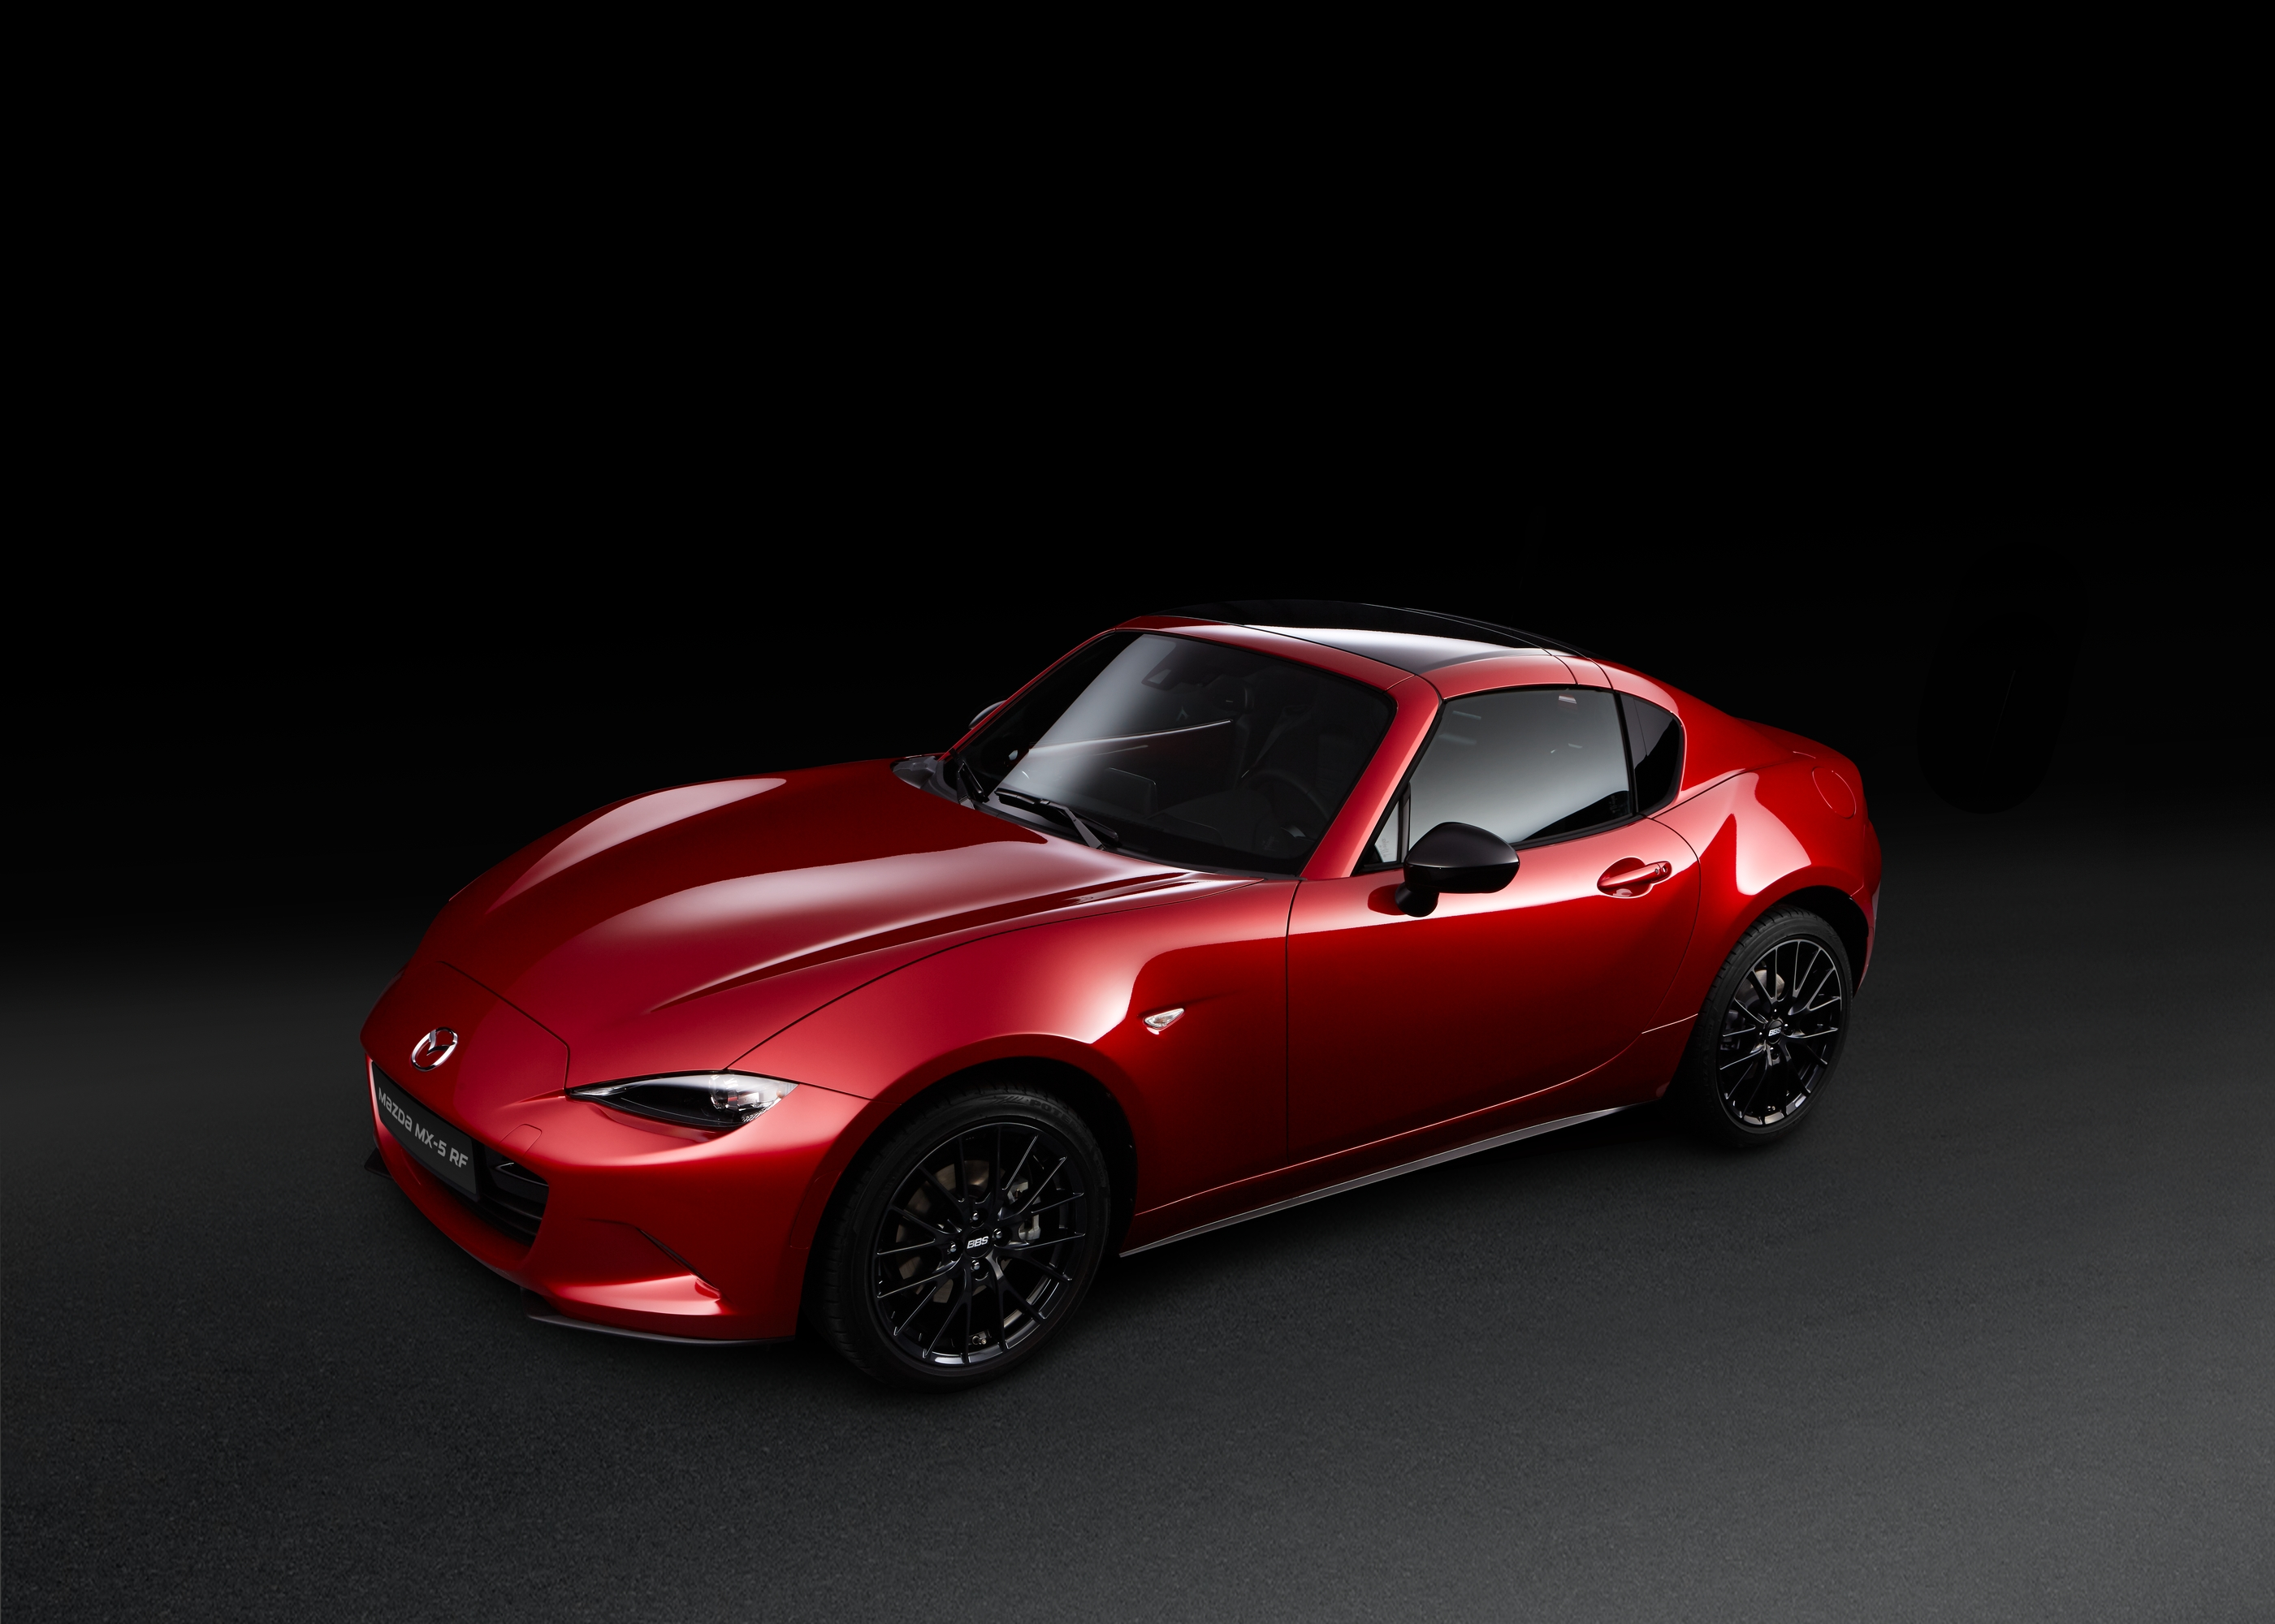 sondermodell mazda mx 5 rf ignition ausschlie lich ber online reservierung zu kaufen presseportal. Black Bedroom Furniture Sets. Home Design Ideas